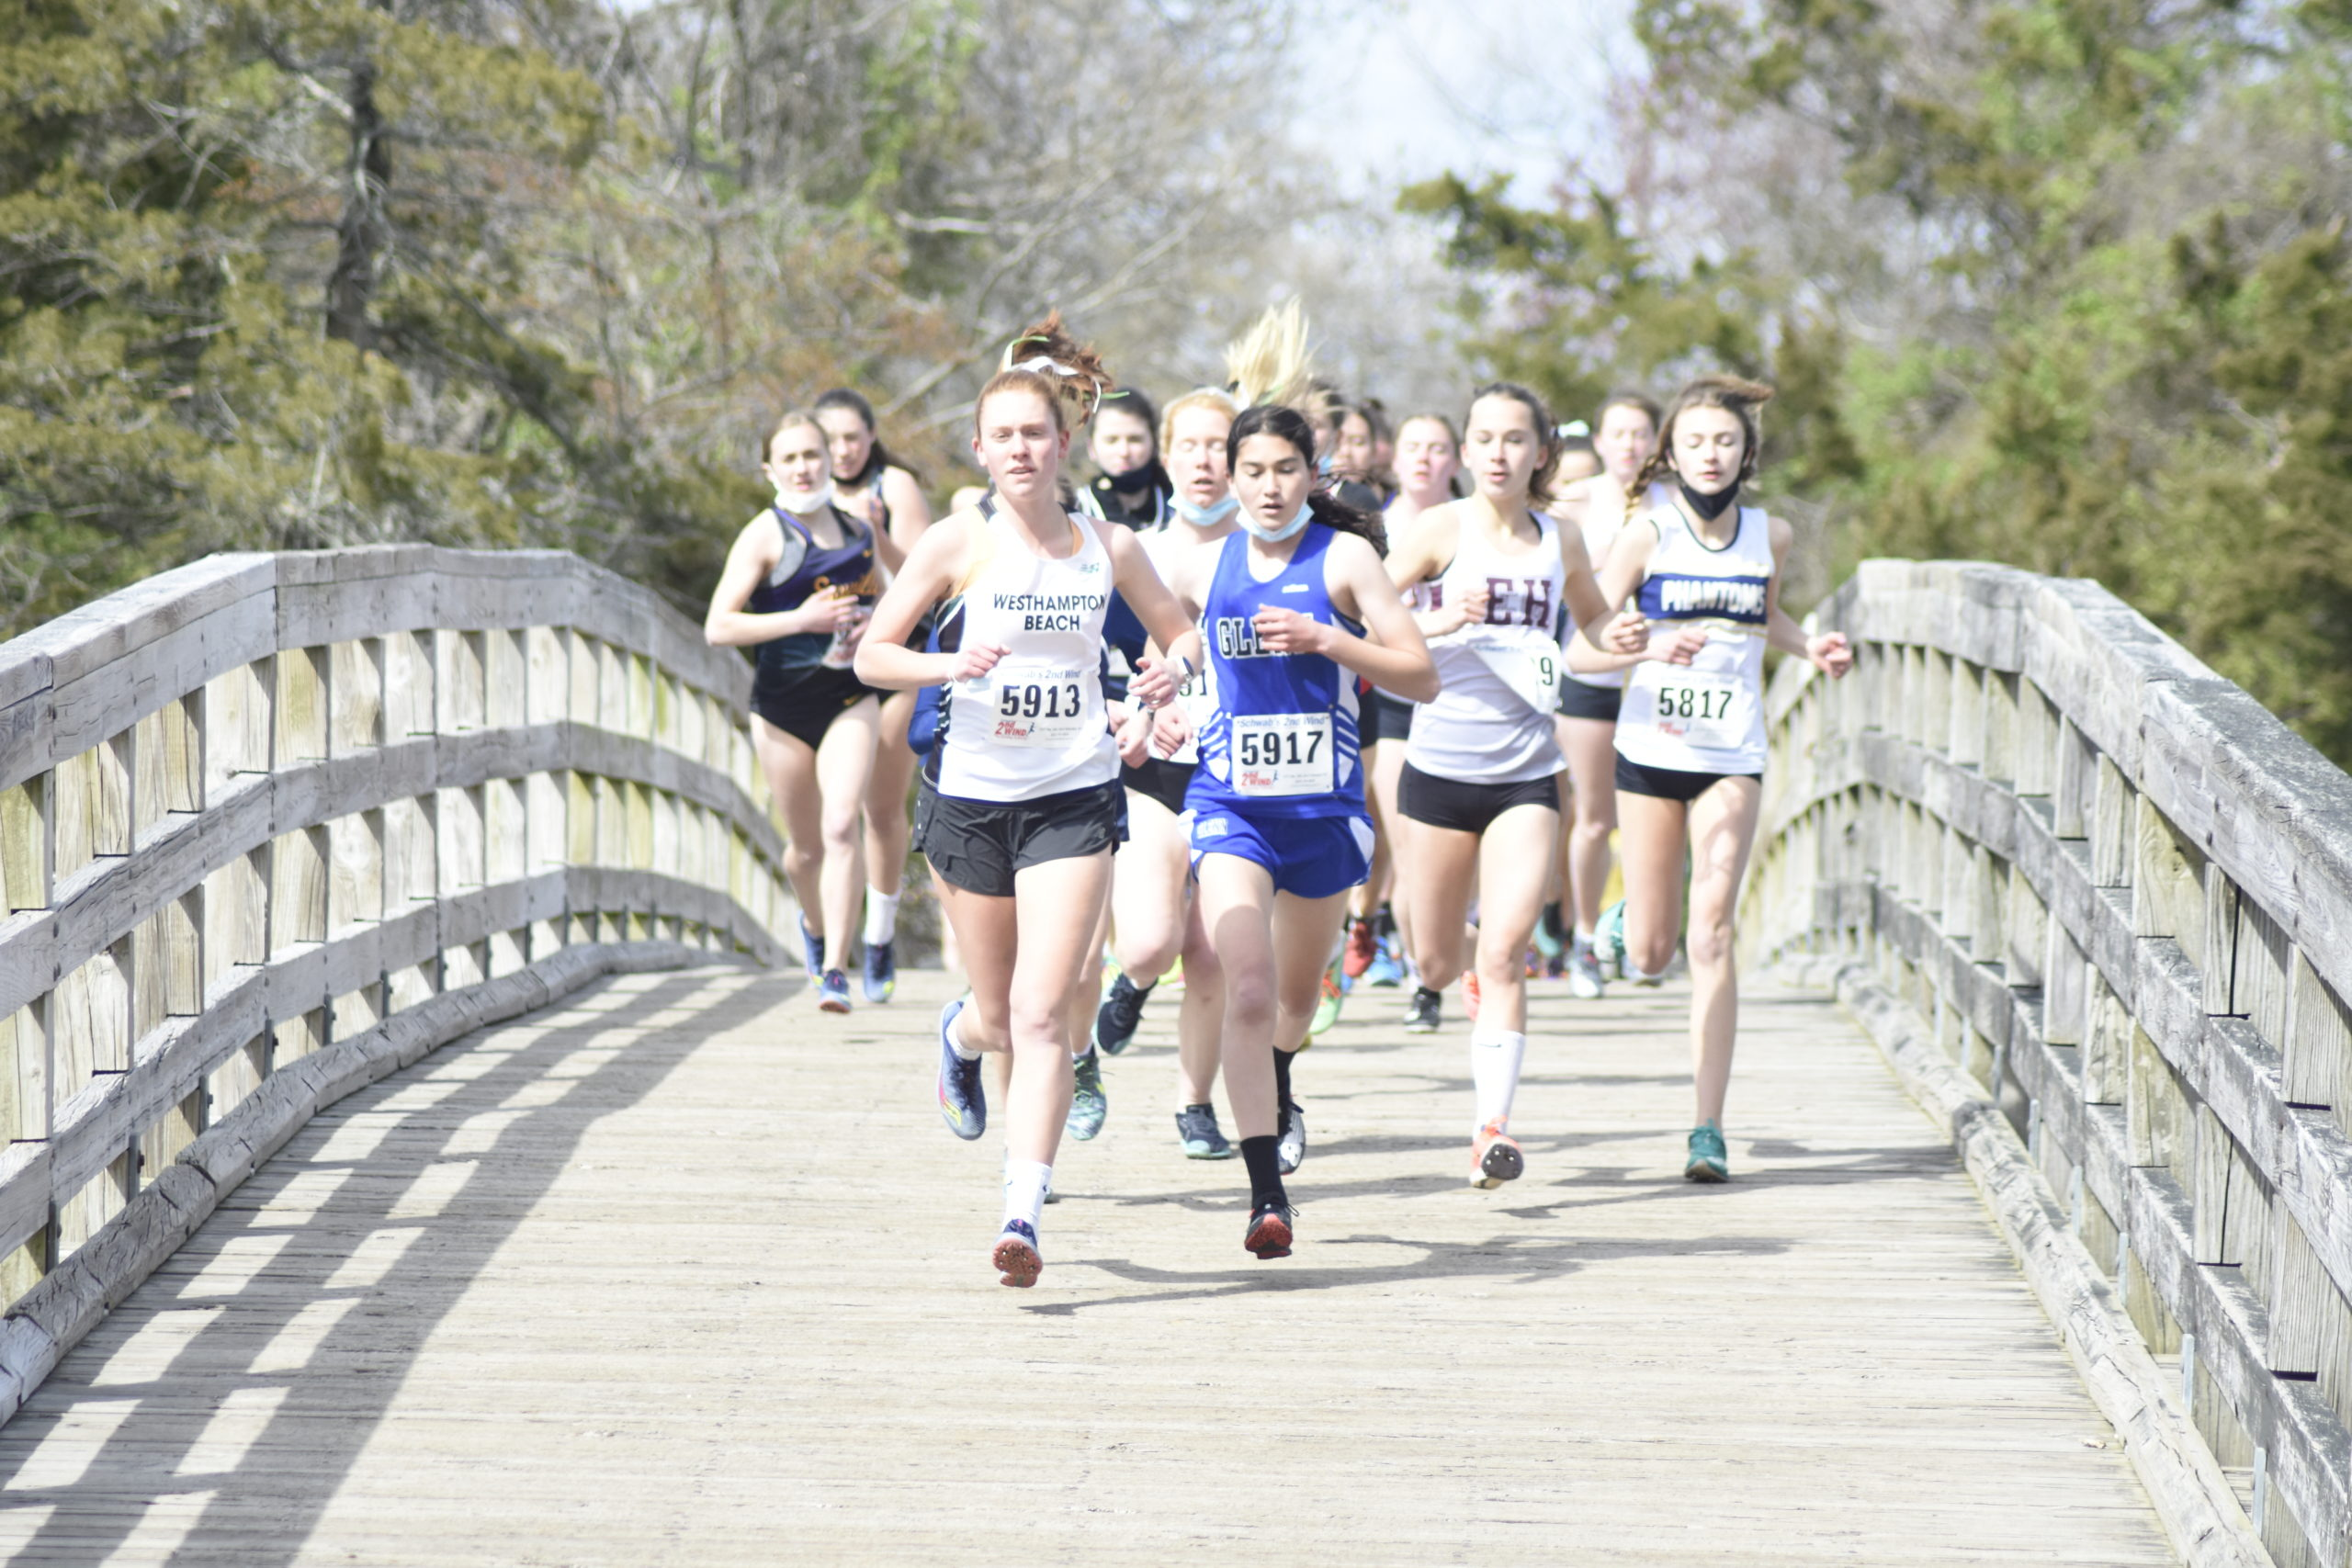 Westhampton Beach senior Jackie Amato leads the 'B' race over the bridge at the beginning of the course at Sunken Meadow.